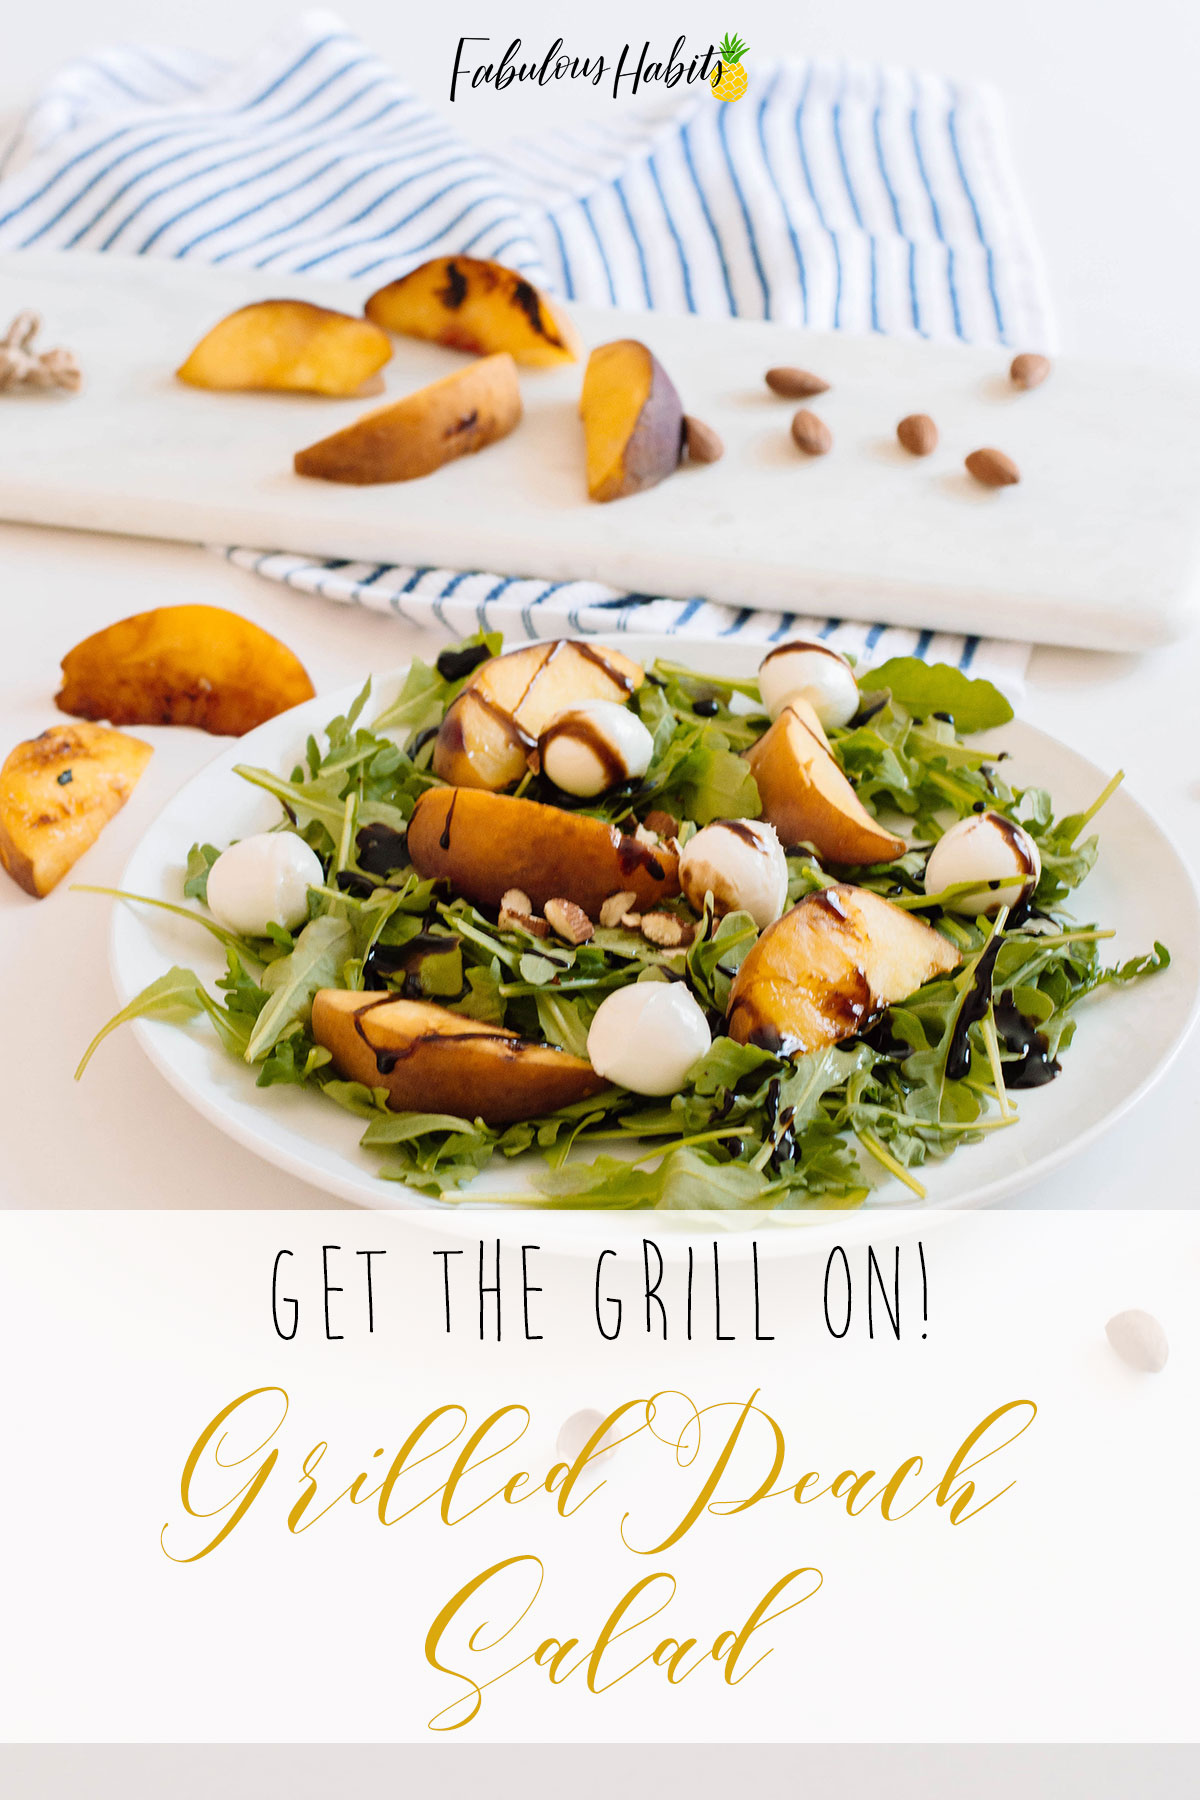 Turn on the grill! It's time to make this delicious Grilled Peach Salad! #summersalad